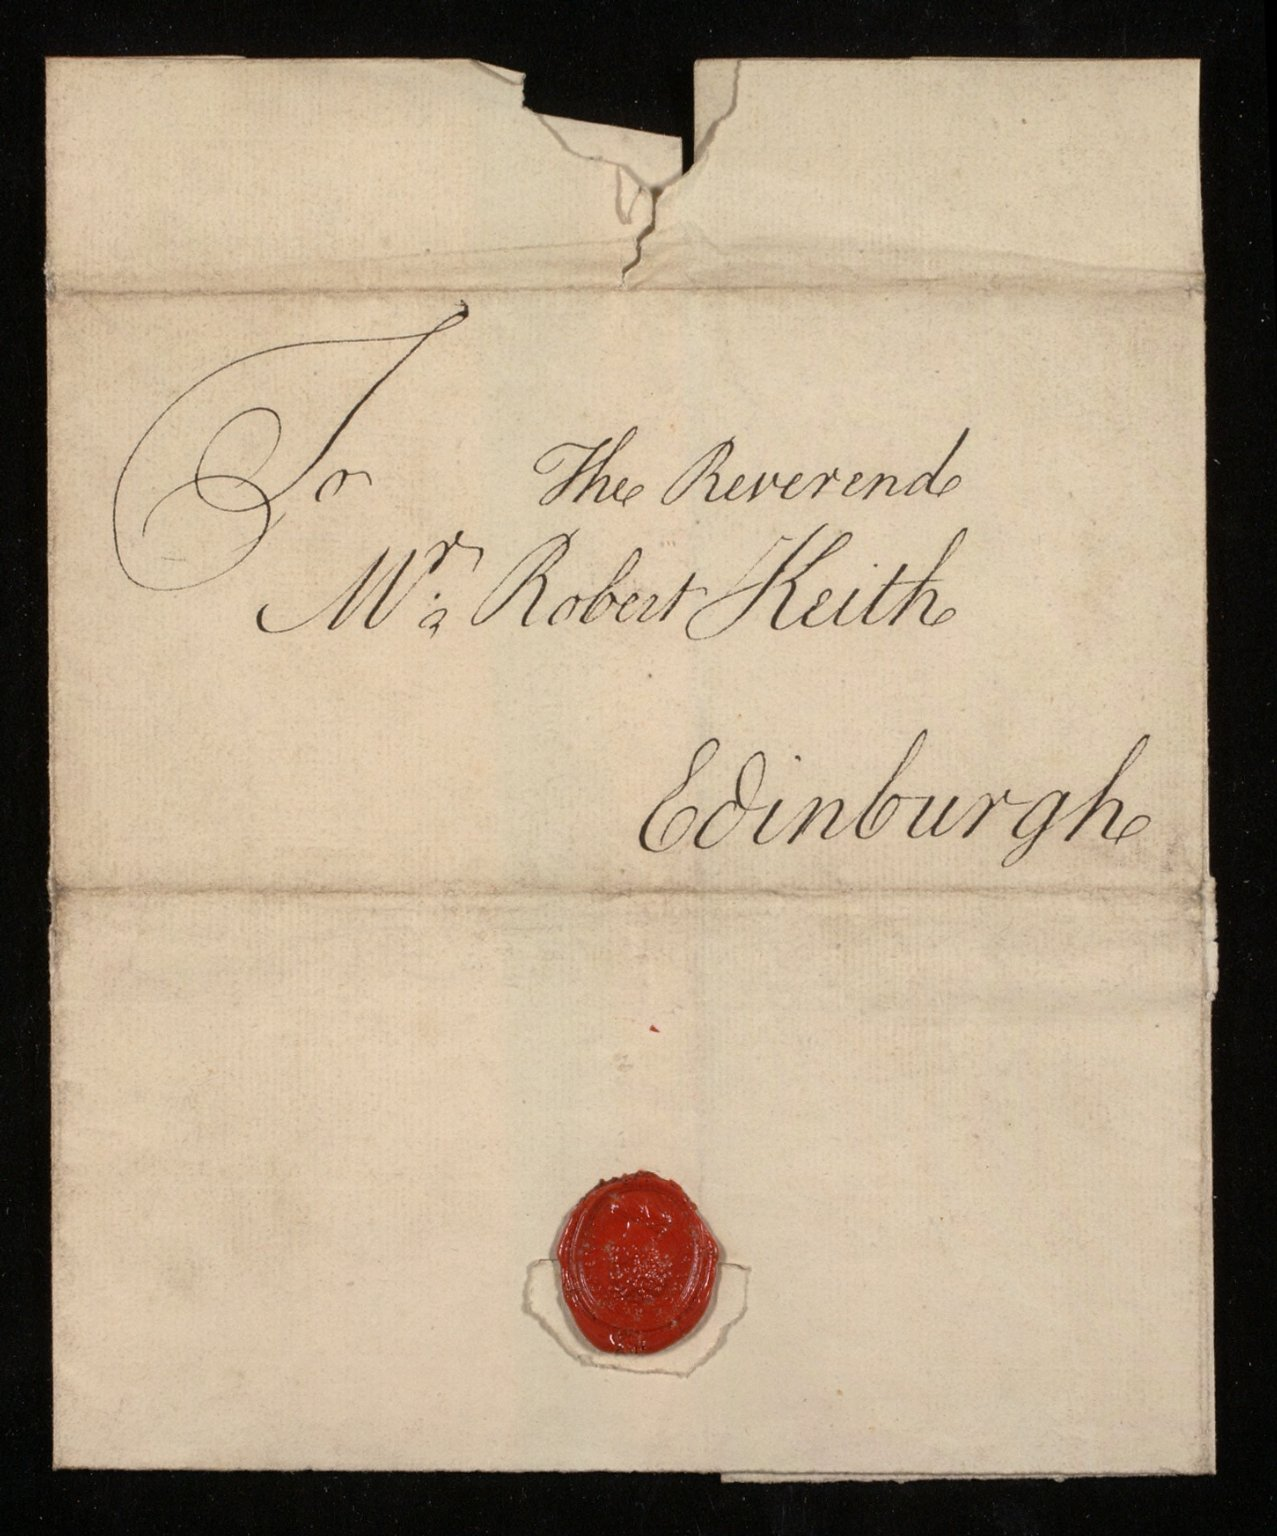 [Letter from Thomas Blackwell, Marischal College, Aberdeen, to Bishop Robert Keith, 18 November 1752] [3 of 3]